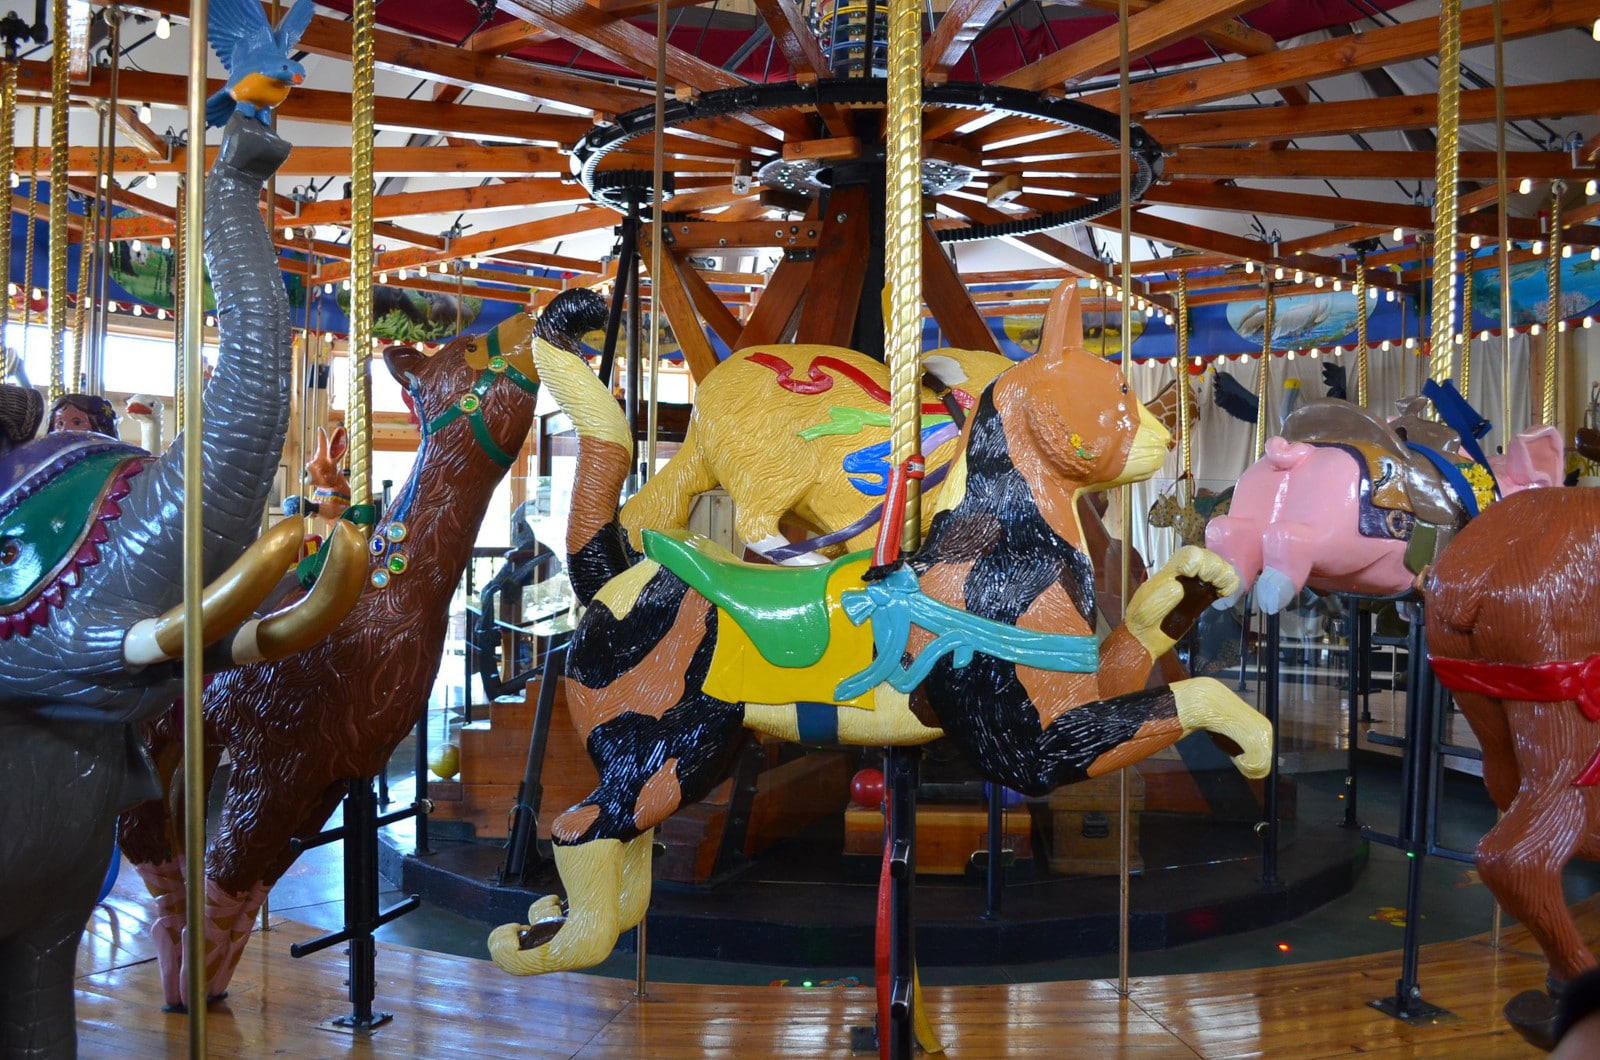 Image of some of the carved animals on the Carousel of Happiness in Nederland, Colorado